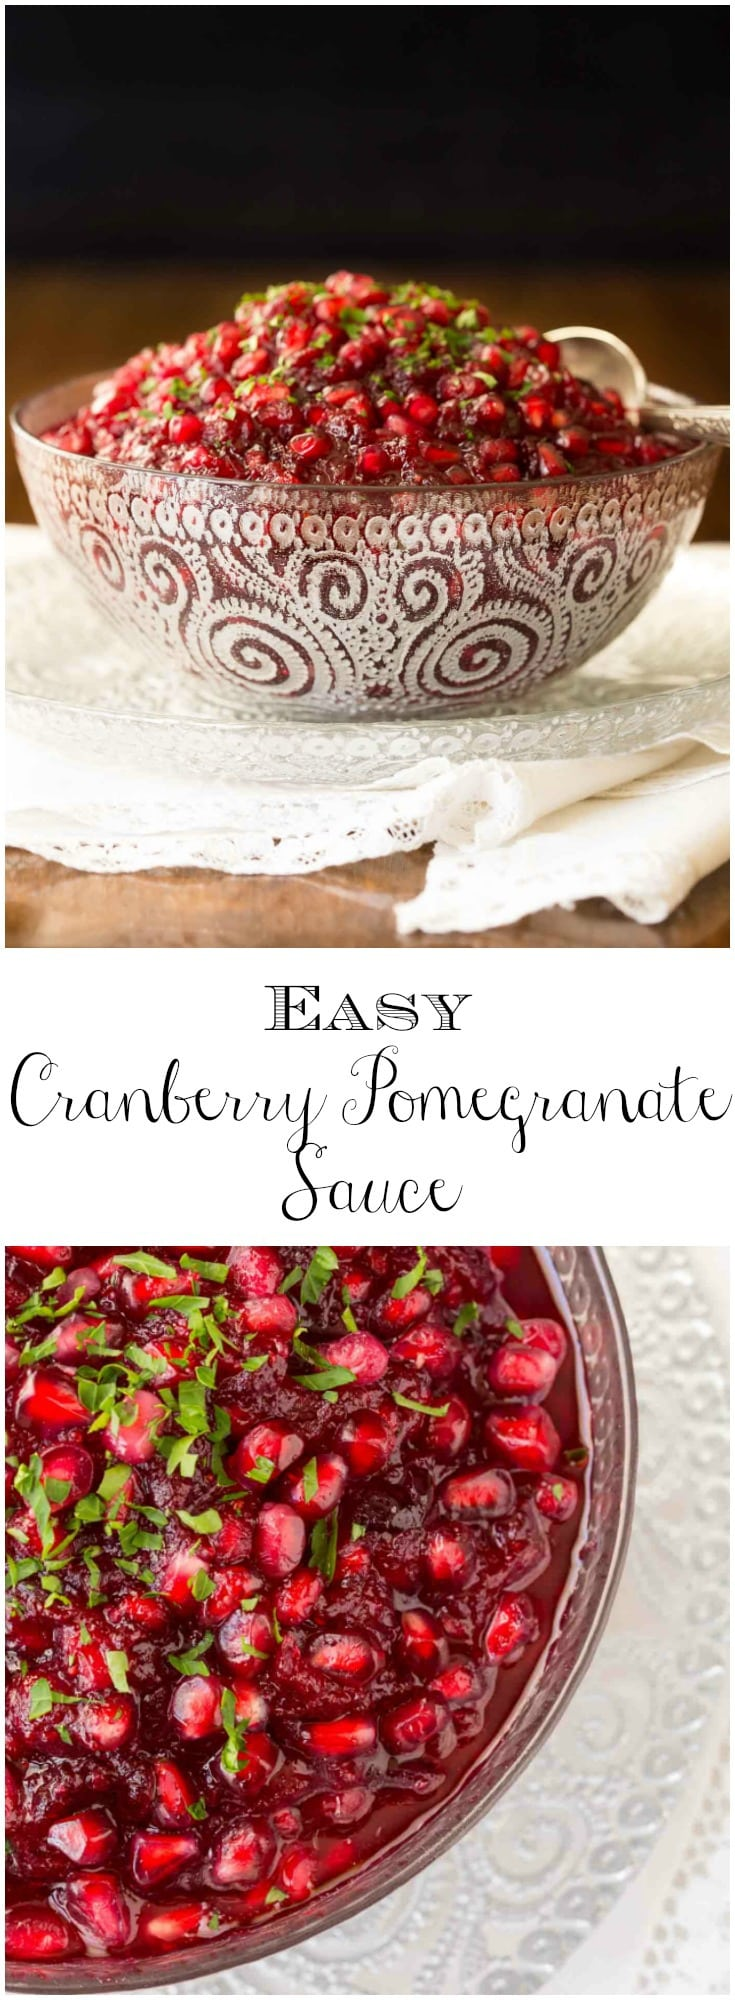 Easy Cranberry Pomegranate Sauce - the easiest , most delicious cranberry sauce ever with ginger, lemongrass and pomegranates!